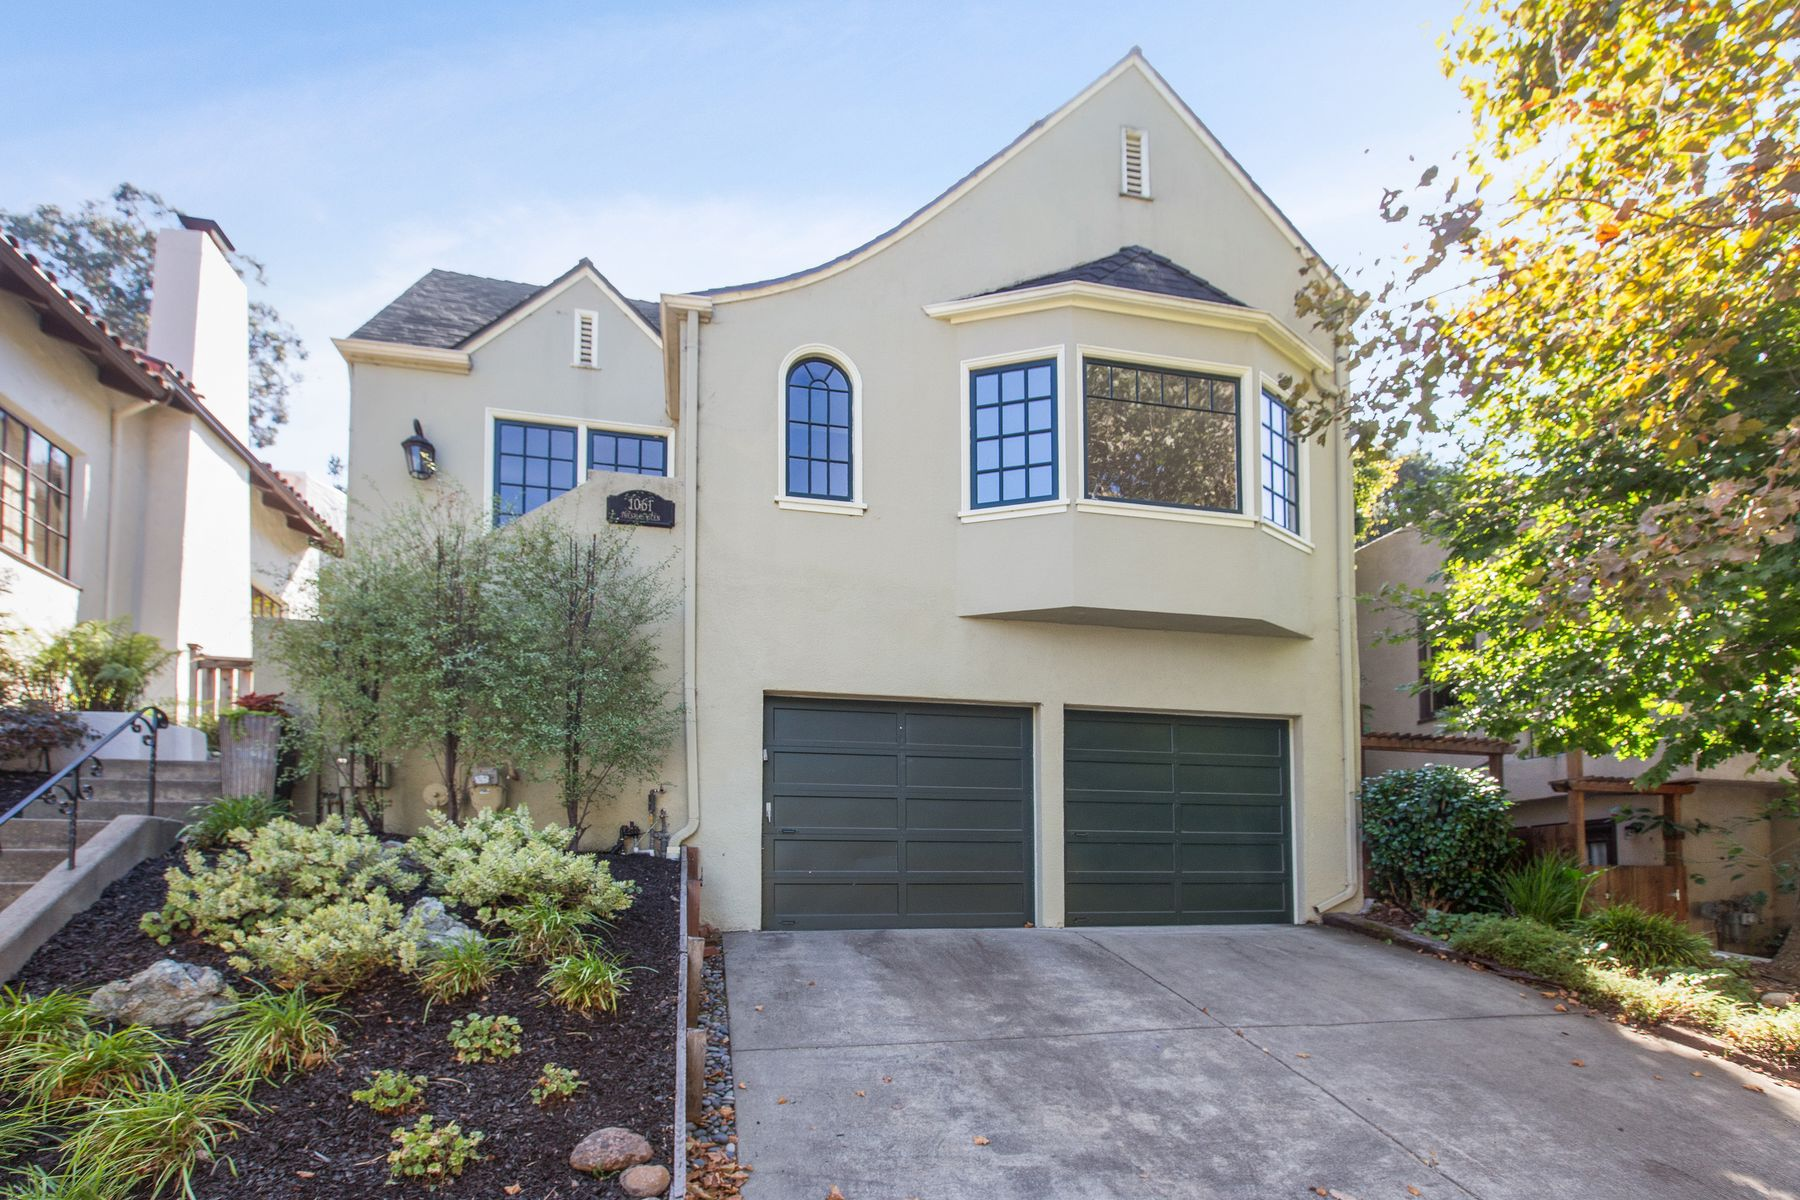 Single Family Homes for Sale at Updated Three Bedroom Traditional 1061 Trestle Glen Rd Oakland, California 94610 United States